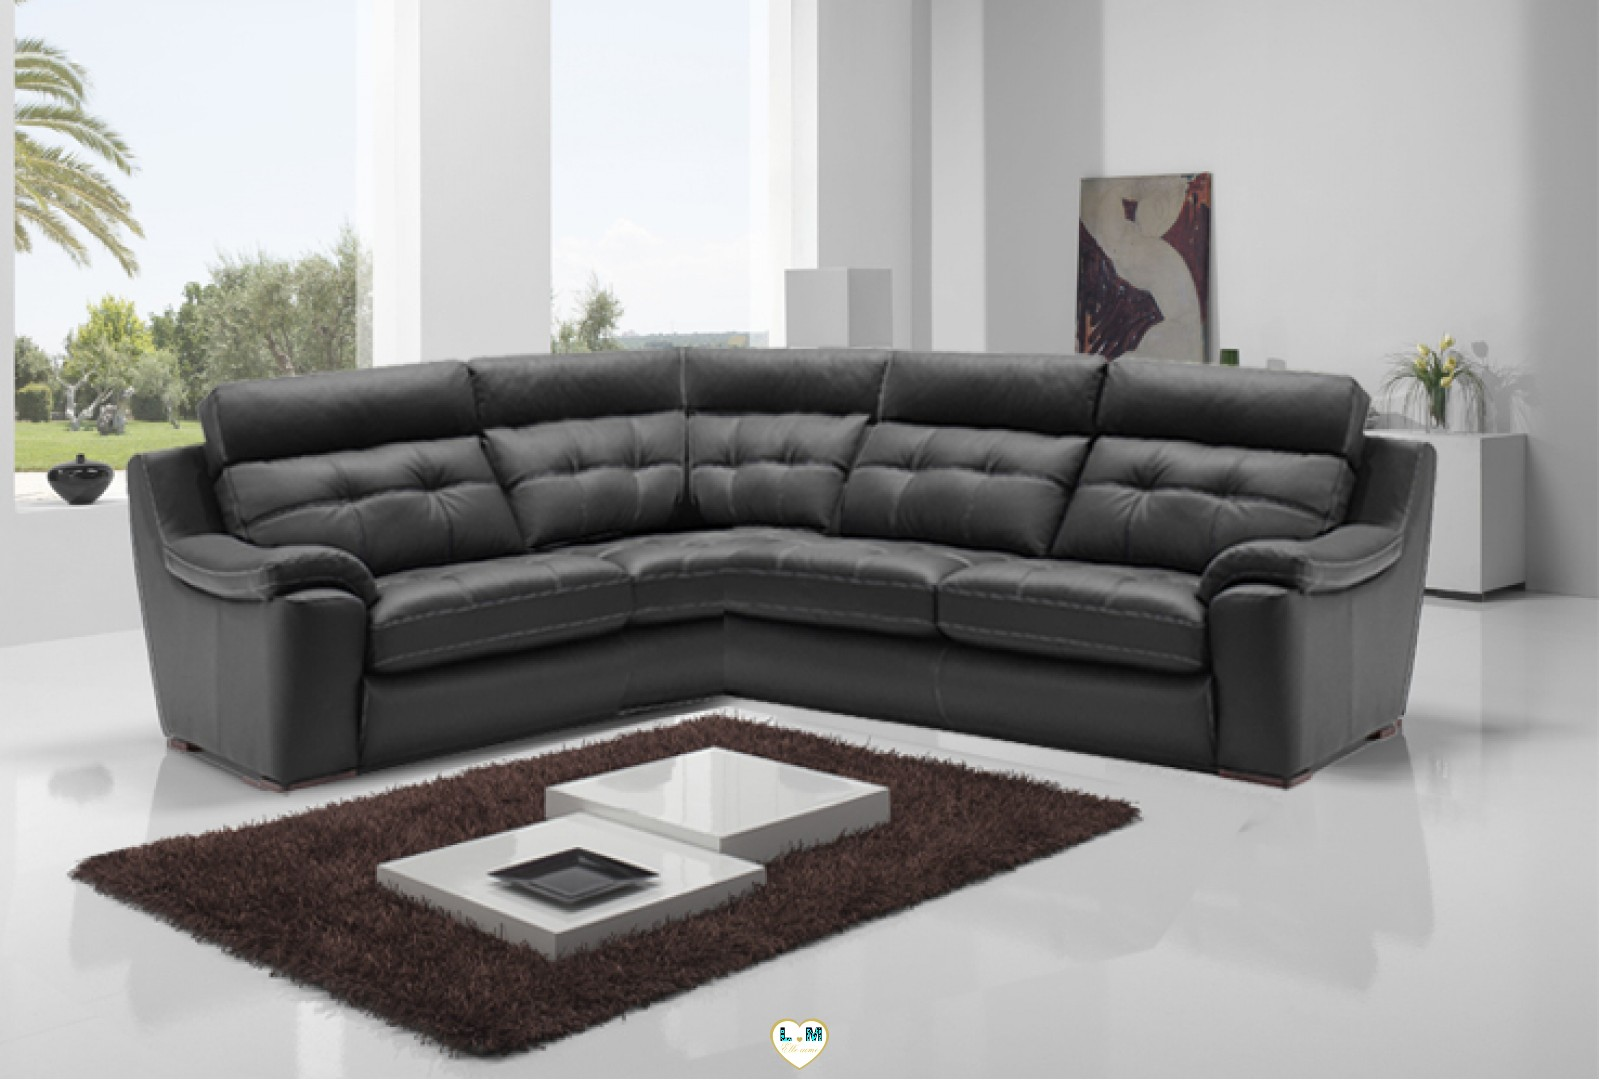 hera angle ensemble salon cuir lignemeuble com. Black Bedroom Furniture Sets. Home Design Ideas